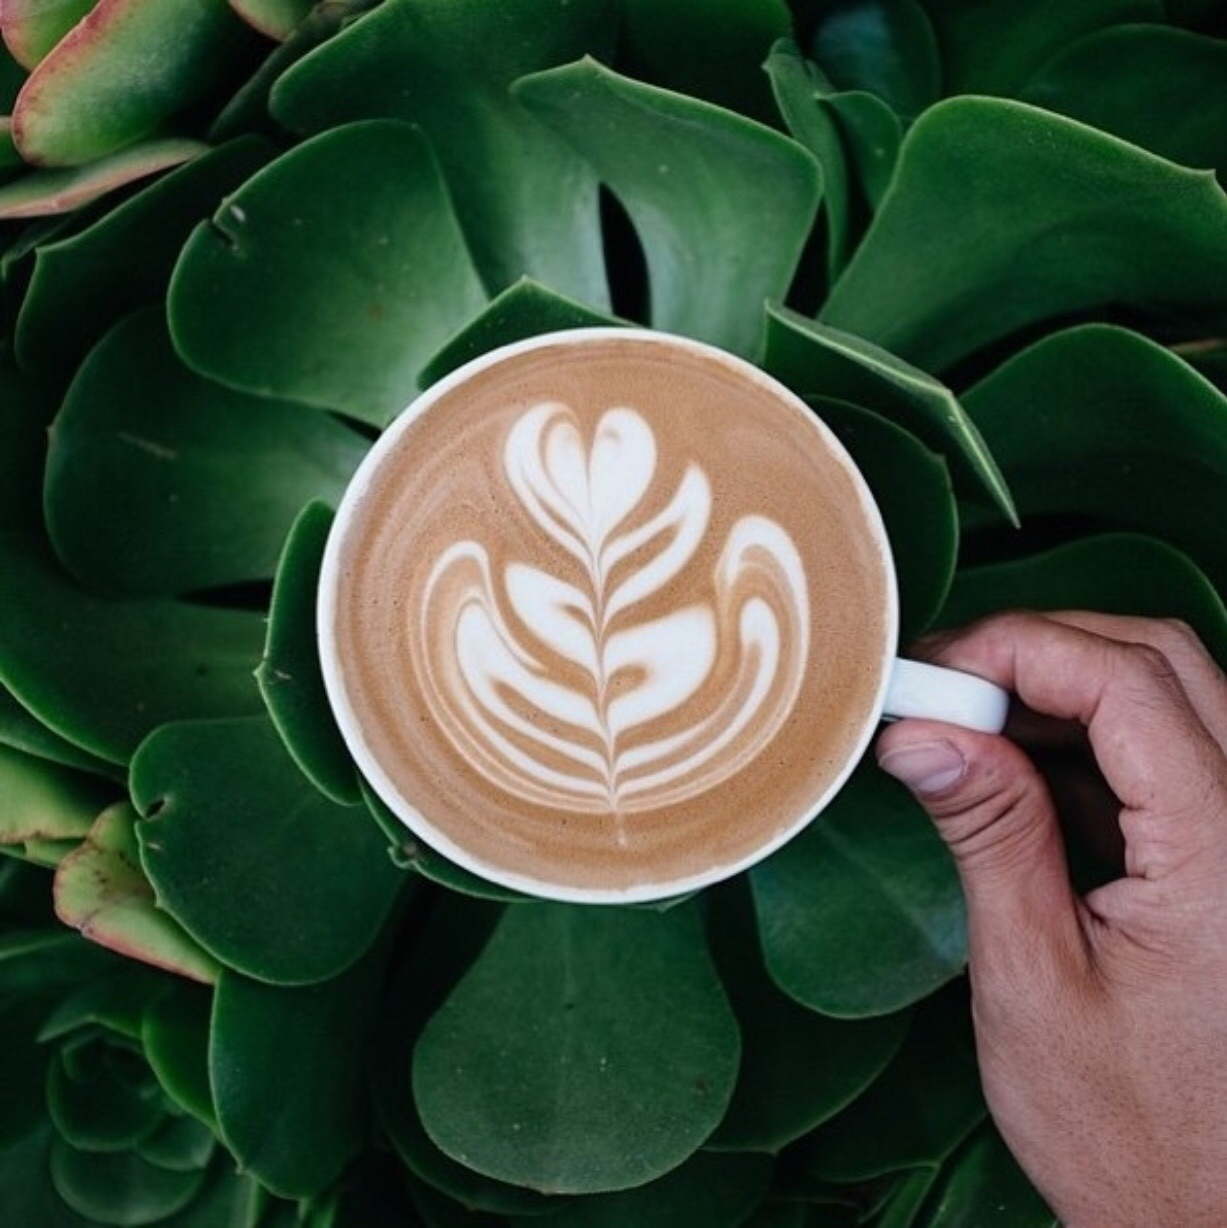 chocolate, latte art, food and drink